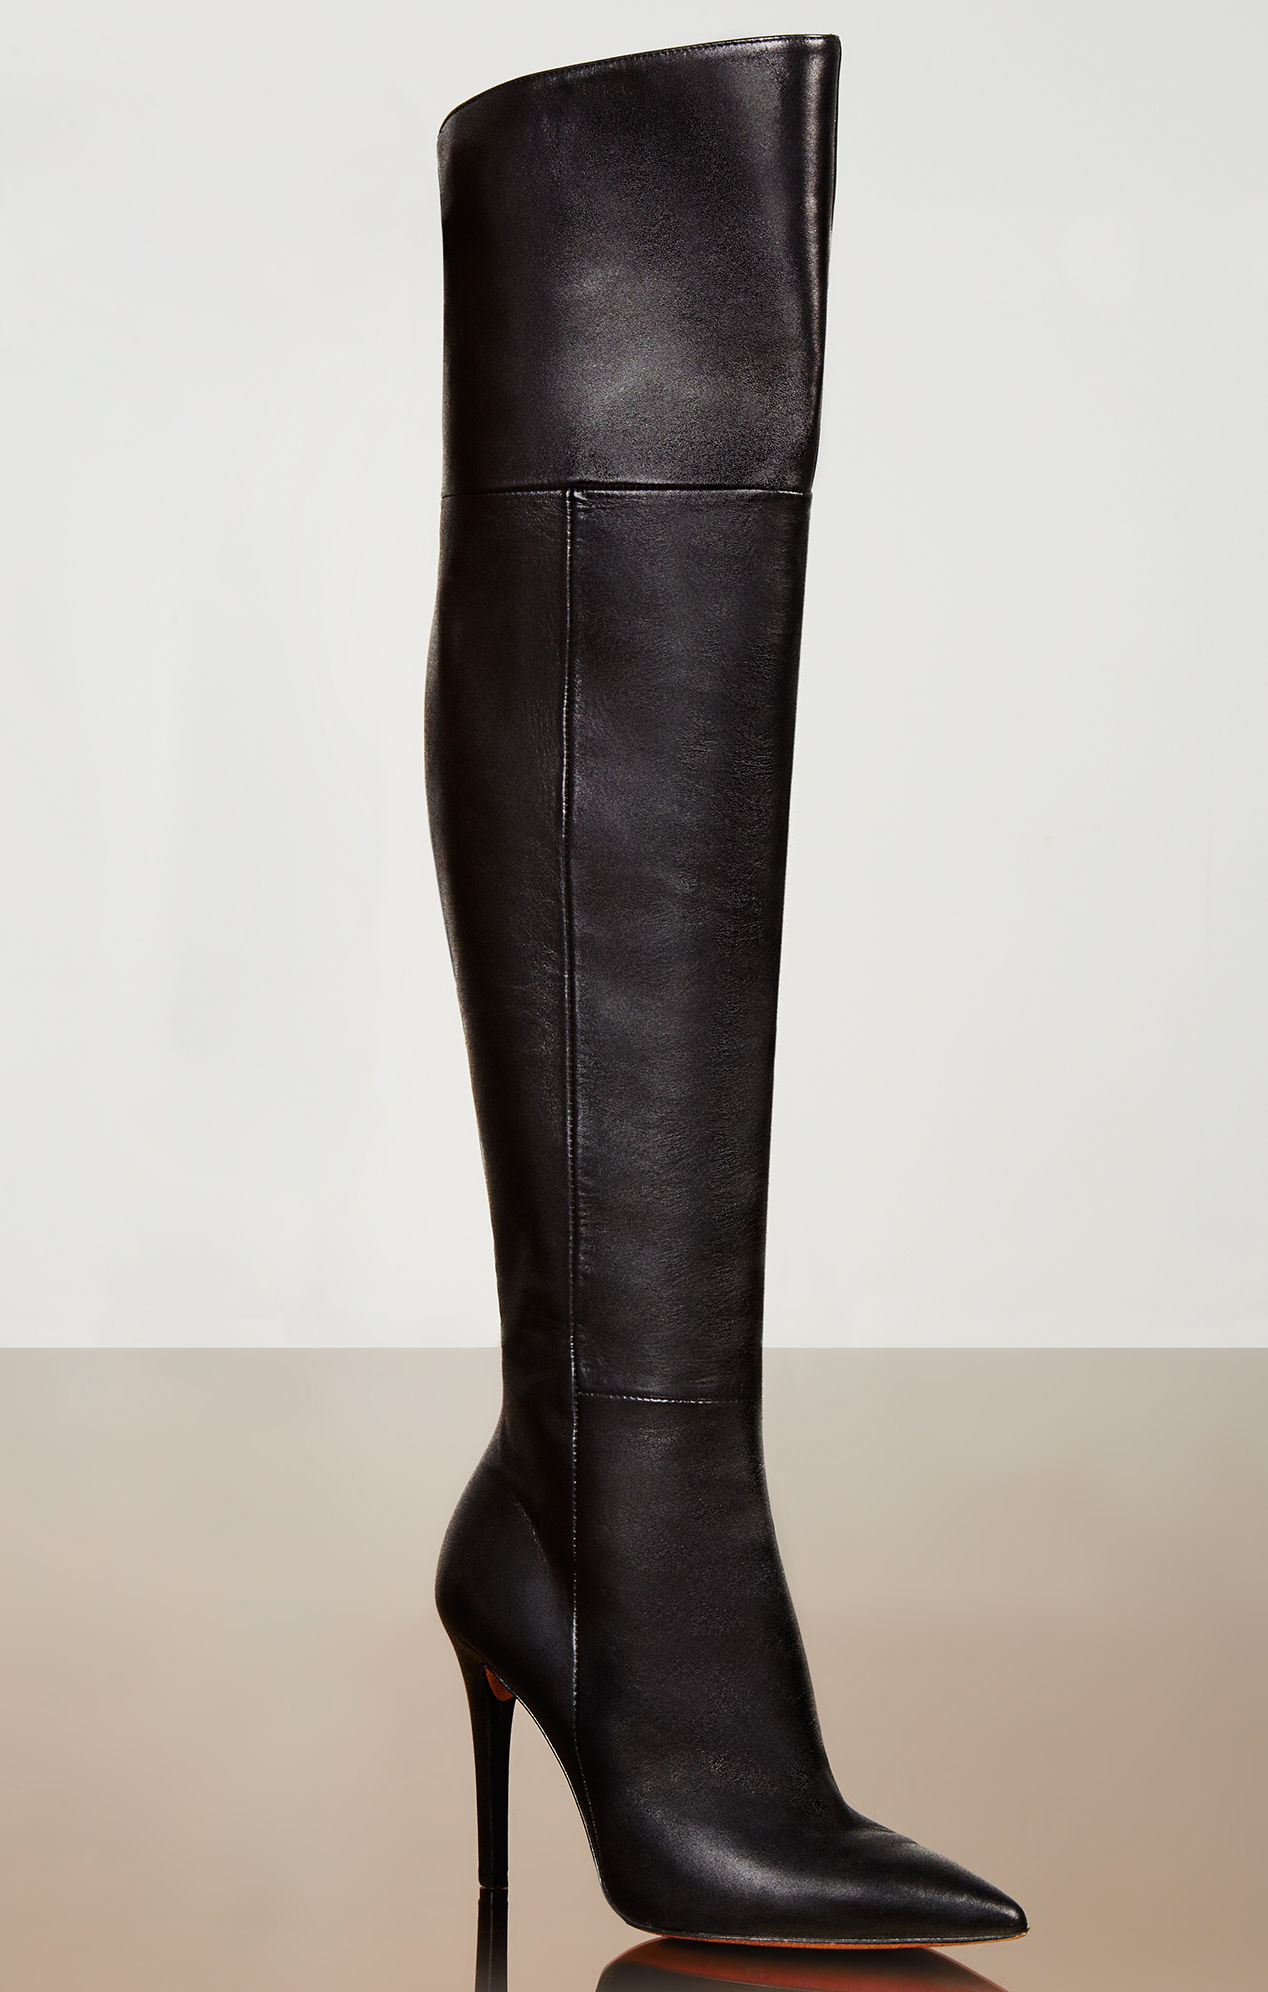 Thigh high boots from AMI Clubwear are a wardrobe staple in the closet of any fashionista. Over the years, they've evolved from a practical pair of work shoes to a high-end fashion statement, with leather thigh high boots blanketing the runways year after year.